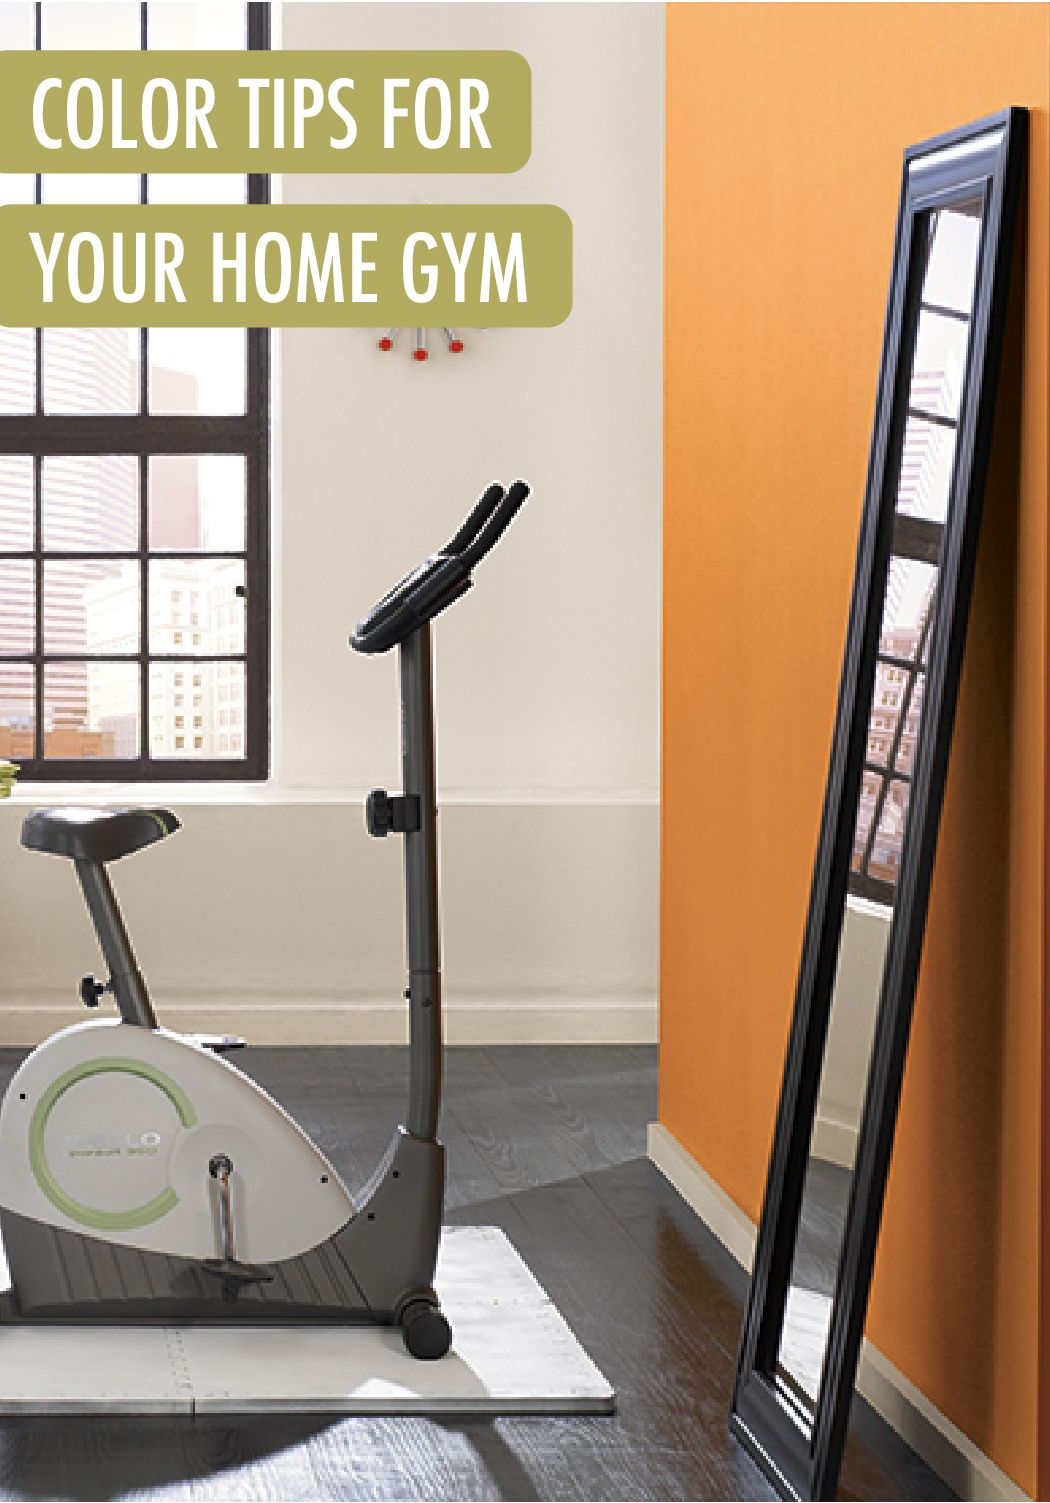 Ask A Color Expert   Gym Room   Colorfully, BEHR